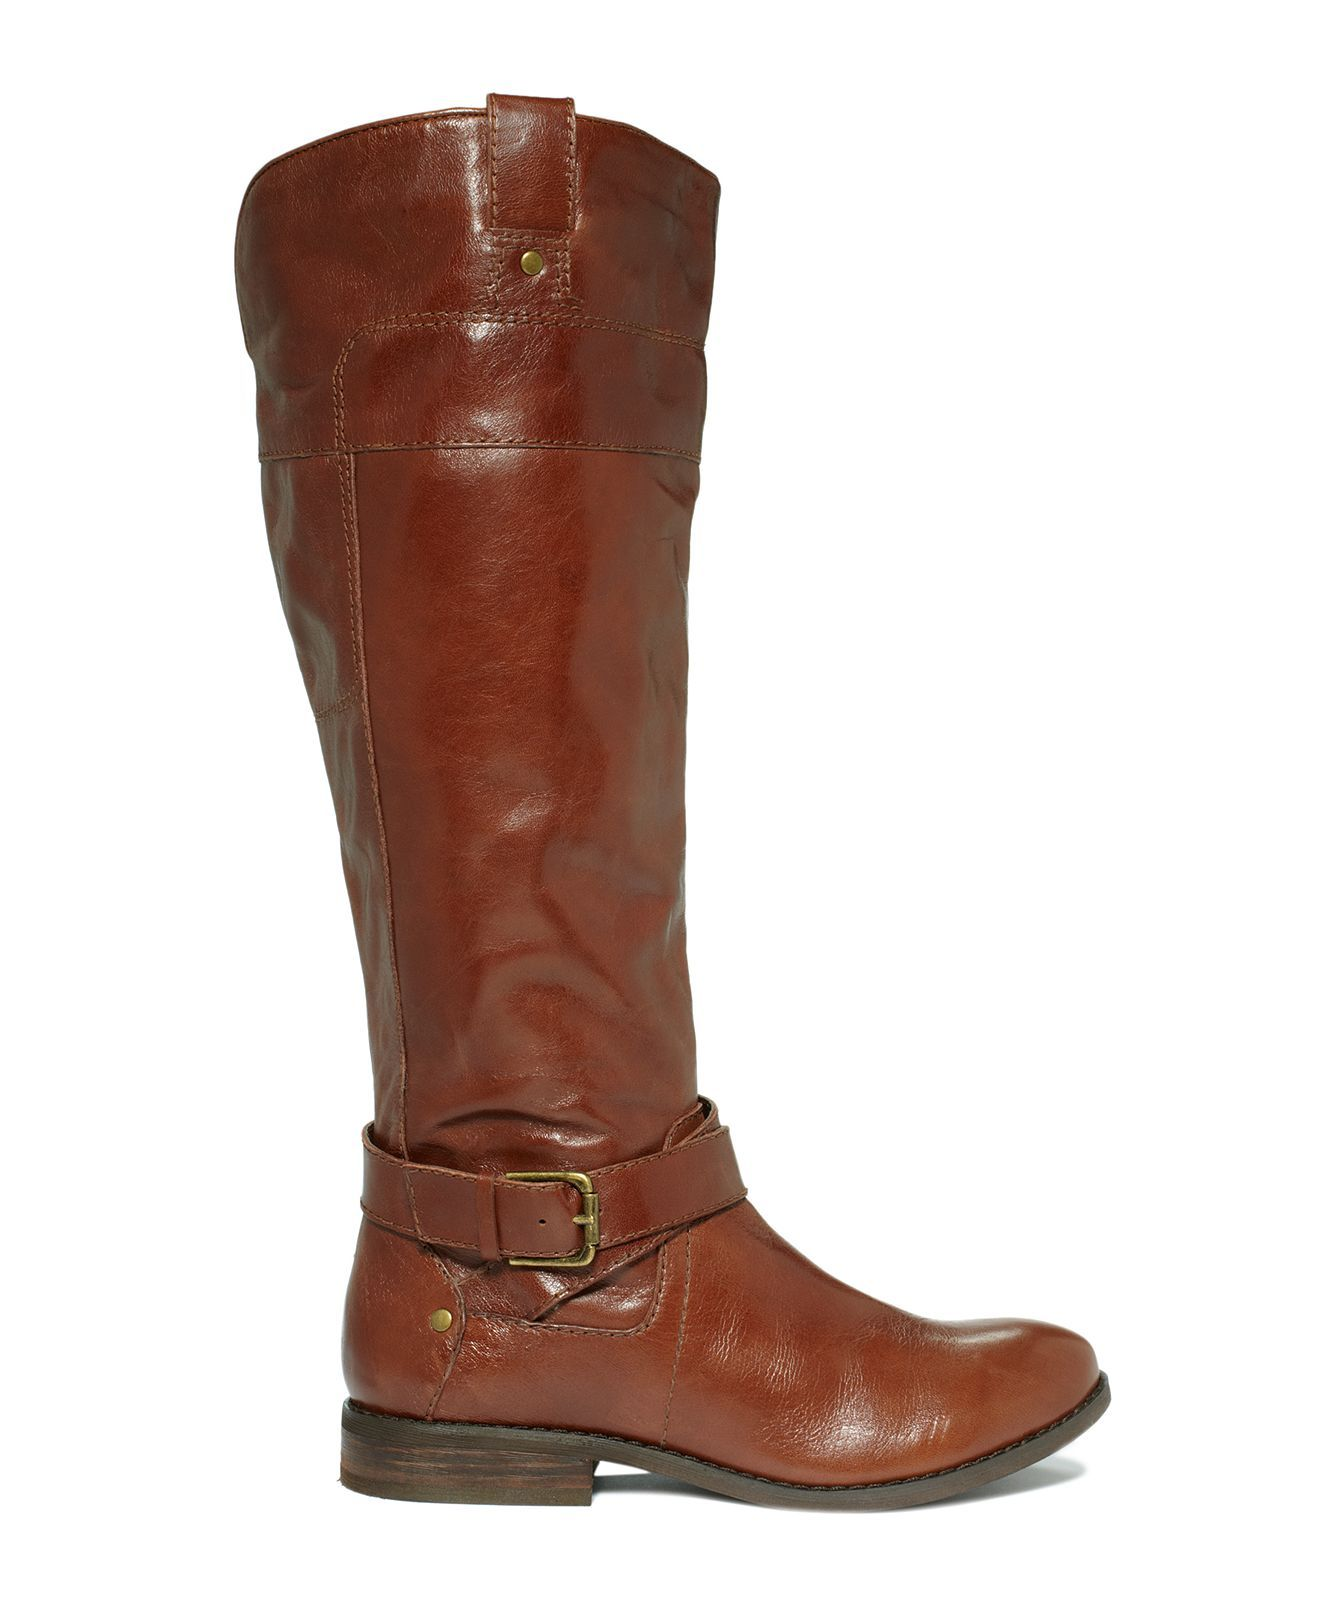 Marc Fisher Arty Tall Riding Boots Macy's | likes, shoes